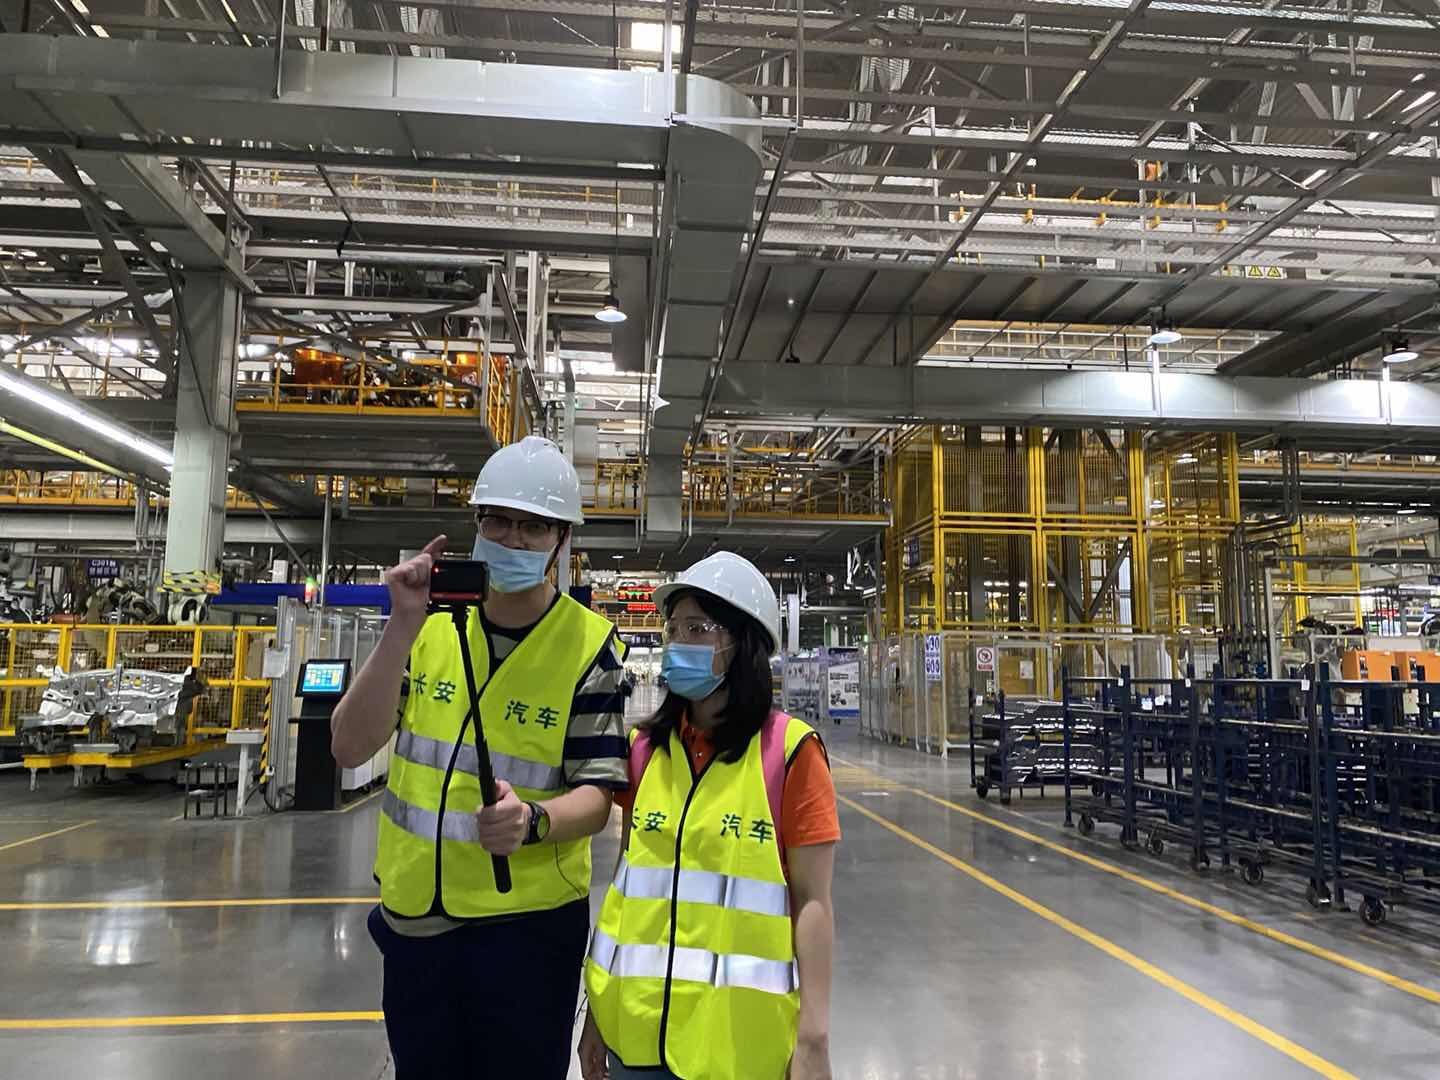 Jerry from This is China did a vlog with iChongqing in the automated production line.